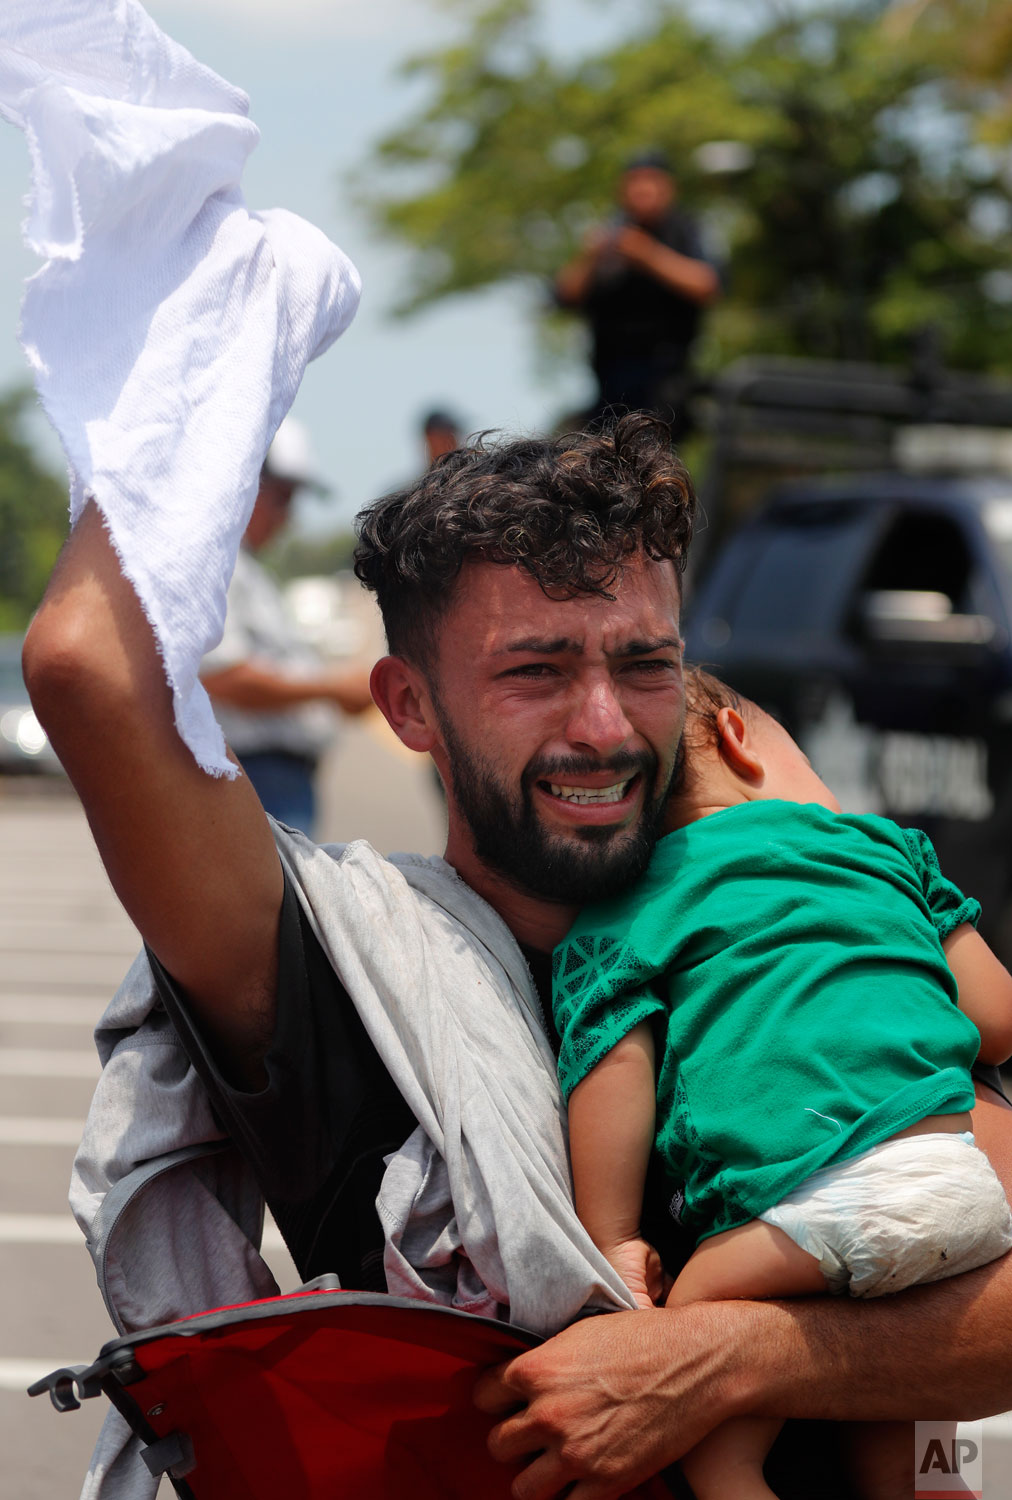 A man begs and prays not to be taken away by Mexican immigration authorities as he holds his child, during a raid on a migrant caravan that had earlier crossed the Mexico - Guatemala border, near Metapa, Chiapas state, Mexico, Wednesday, June 5, 2019. (AP Photo/Marco Ugarte)